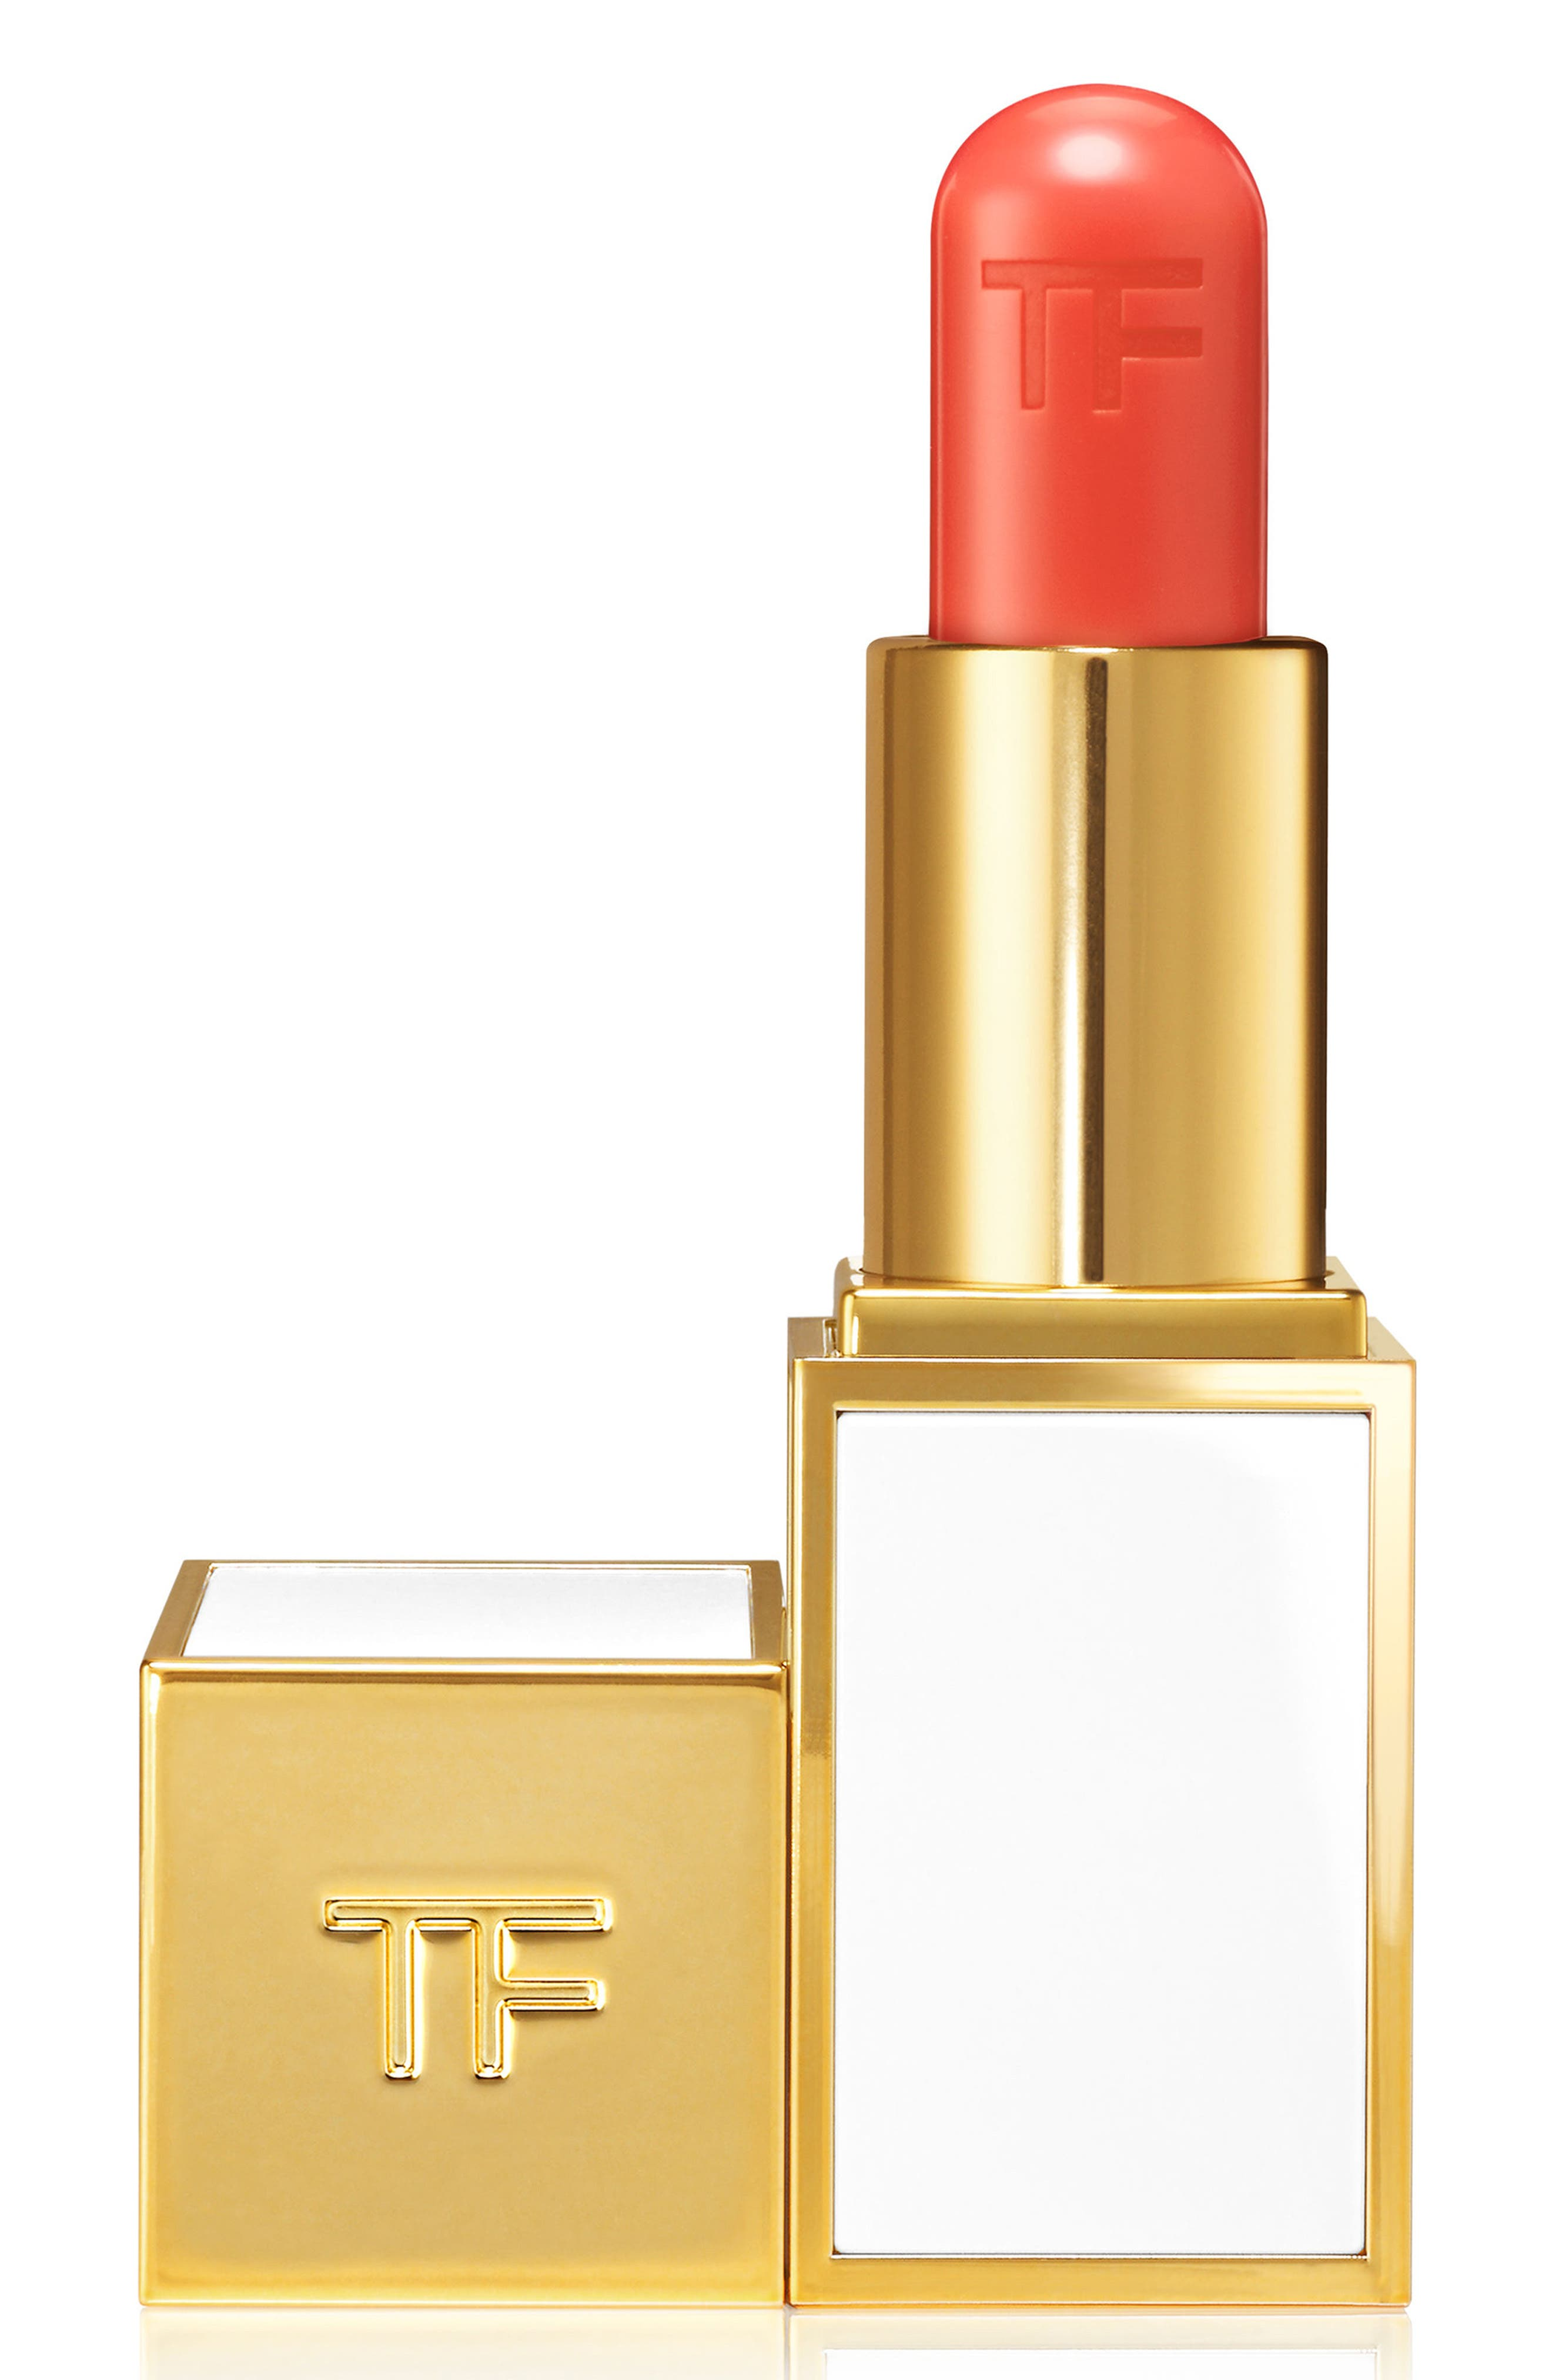 TOM FORD Soleil Clutch Sized Lip Balm, Main, color, 250